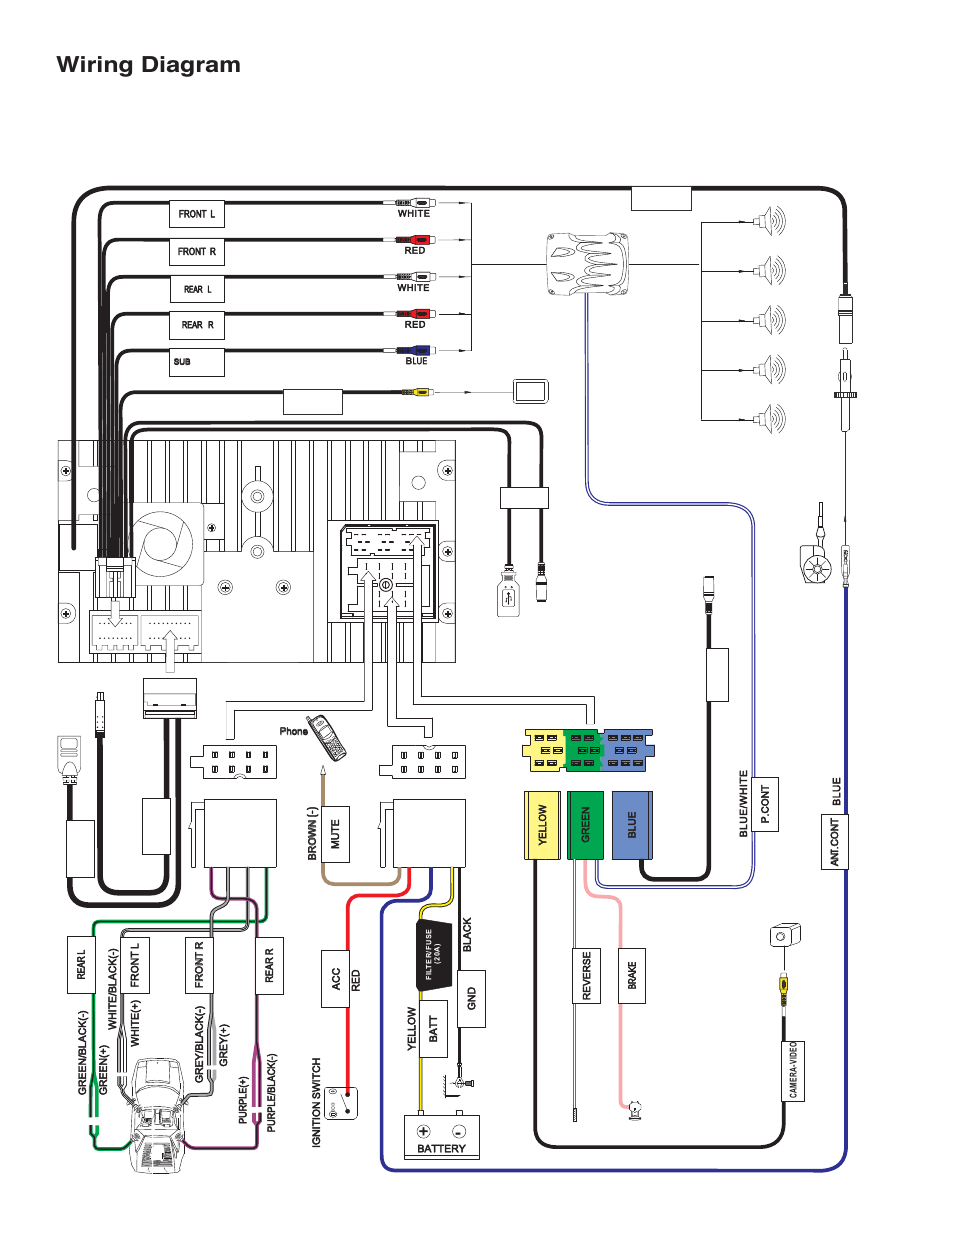 jensen vm9224 page4?resize\\\=665%2C861 viper 5002 alarm wiring diagram viper 5901 wiring diagram, viper viper 500 esp wiring diagram at edmiracle.co